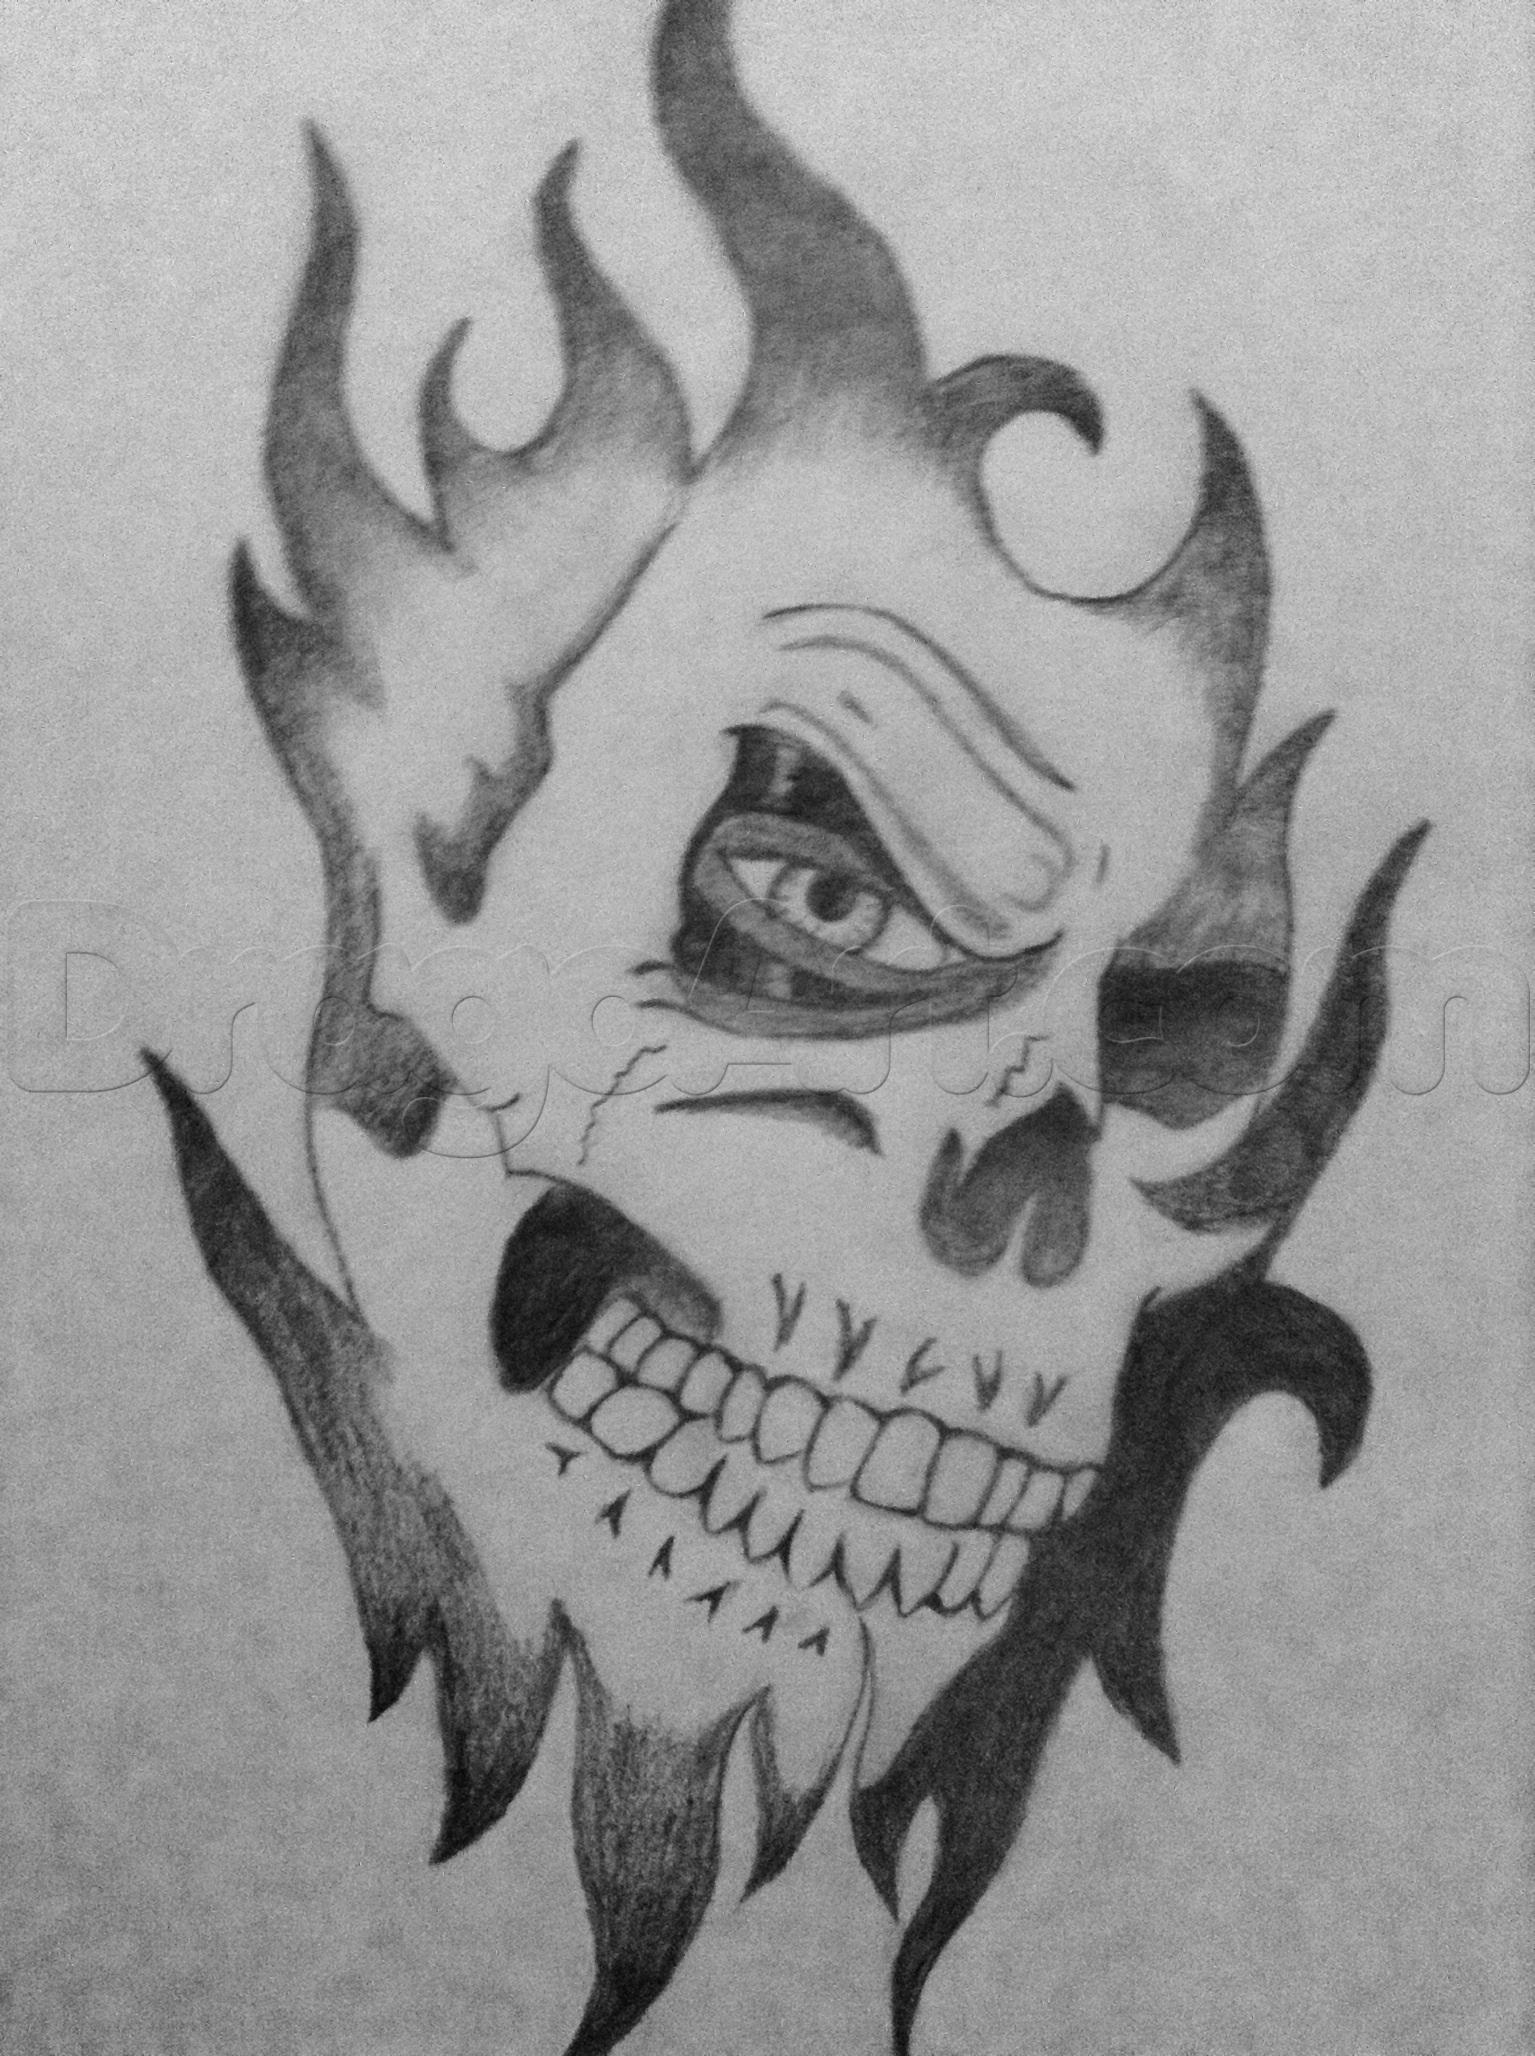 Drawn ssckull awesome Free Skull Free Clip Step